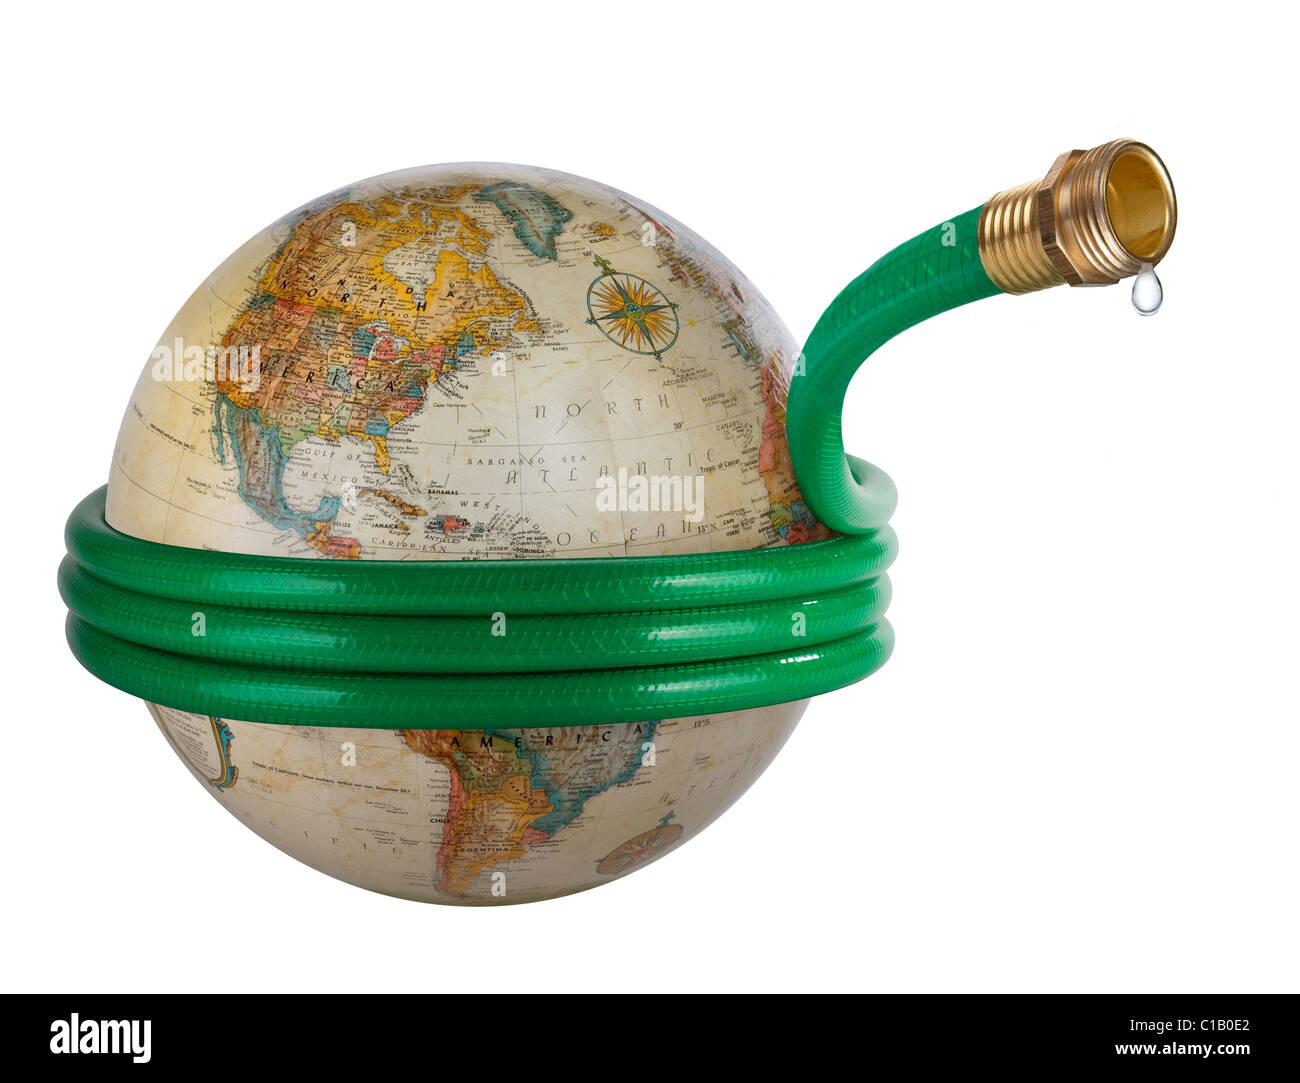 A hose wrapped around a globe in a Global Water Issues concept image. - Stock Image